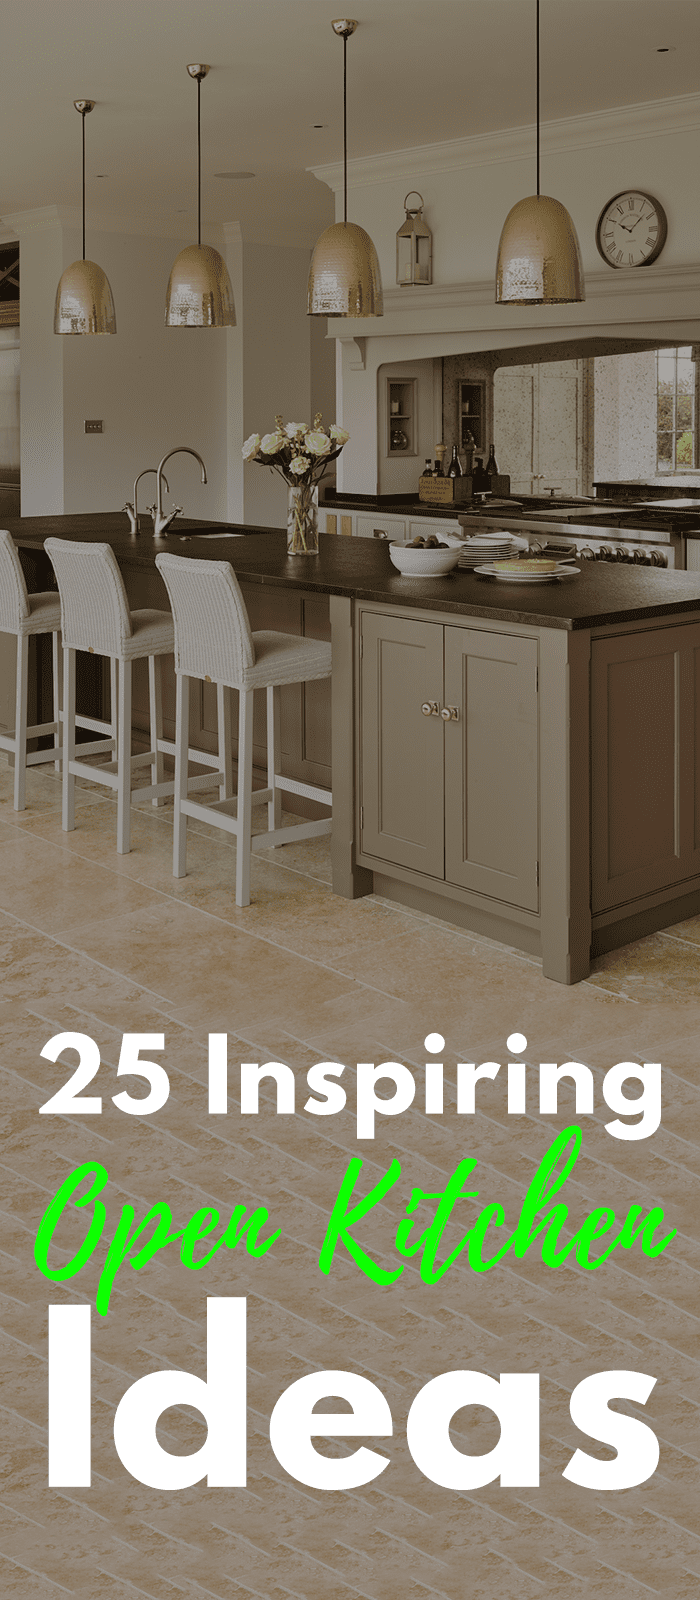 25 Inspiring Open Kitchen Ideas You Should Explore In 2020 Open Concept Kitchen Living Room Kitchen Design Open Open Kitchen